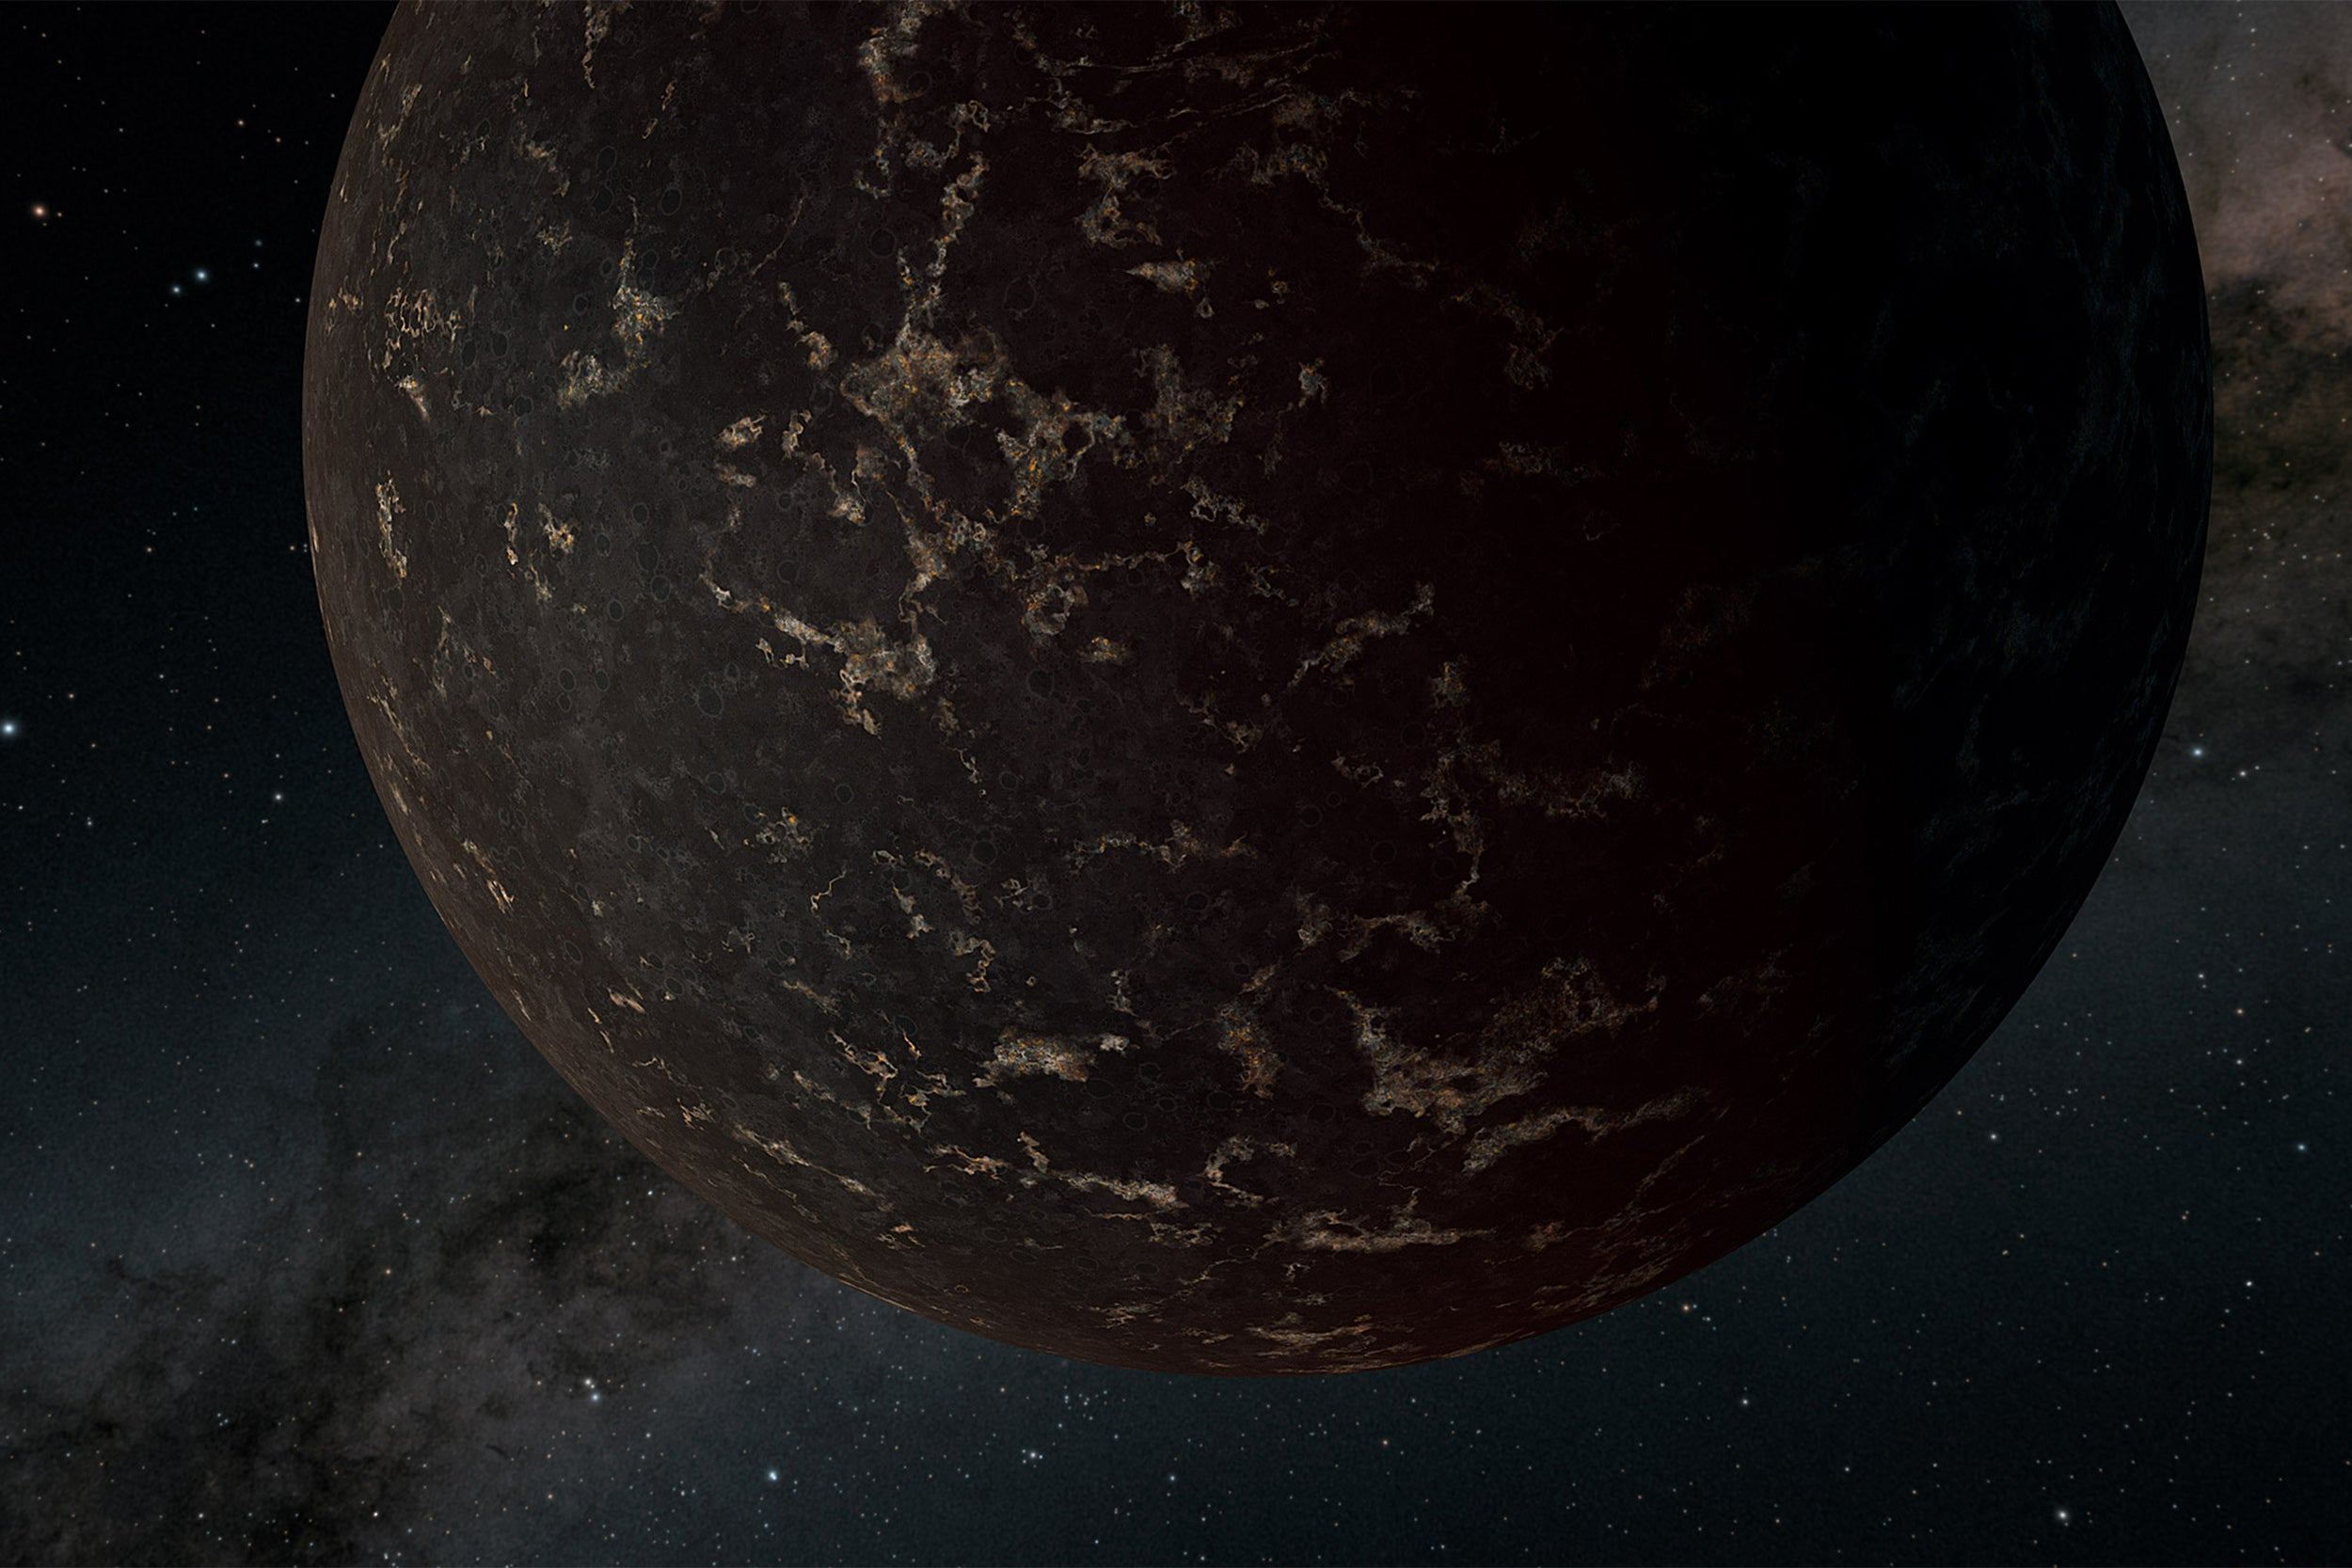 planet is depicted as being largely covered with dark basalt plains.